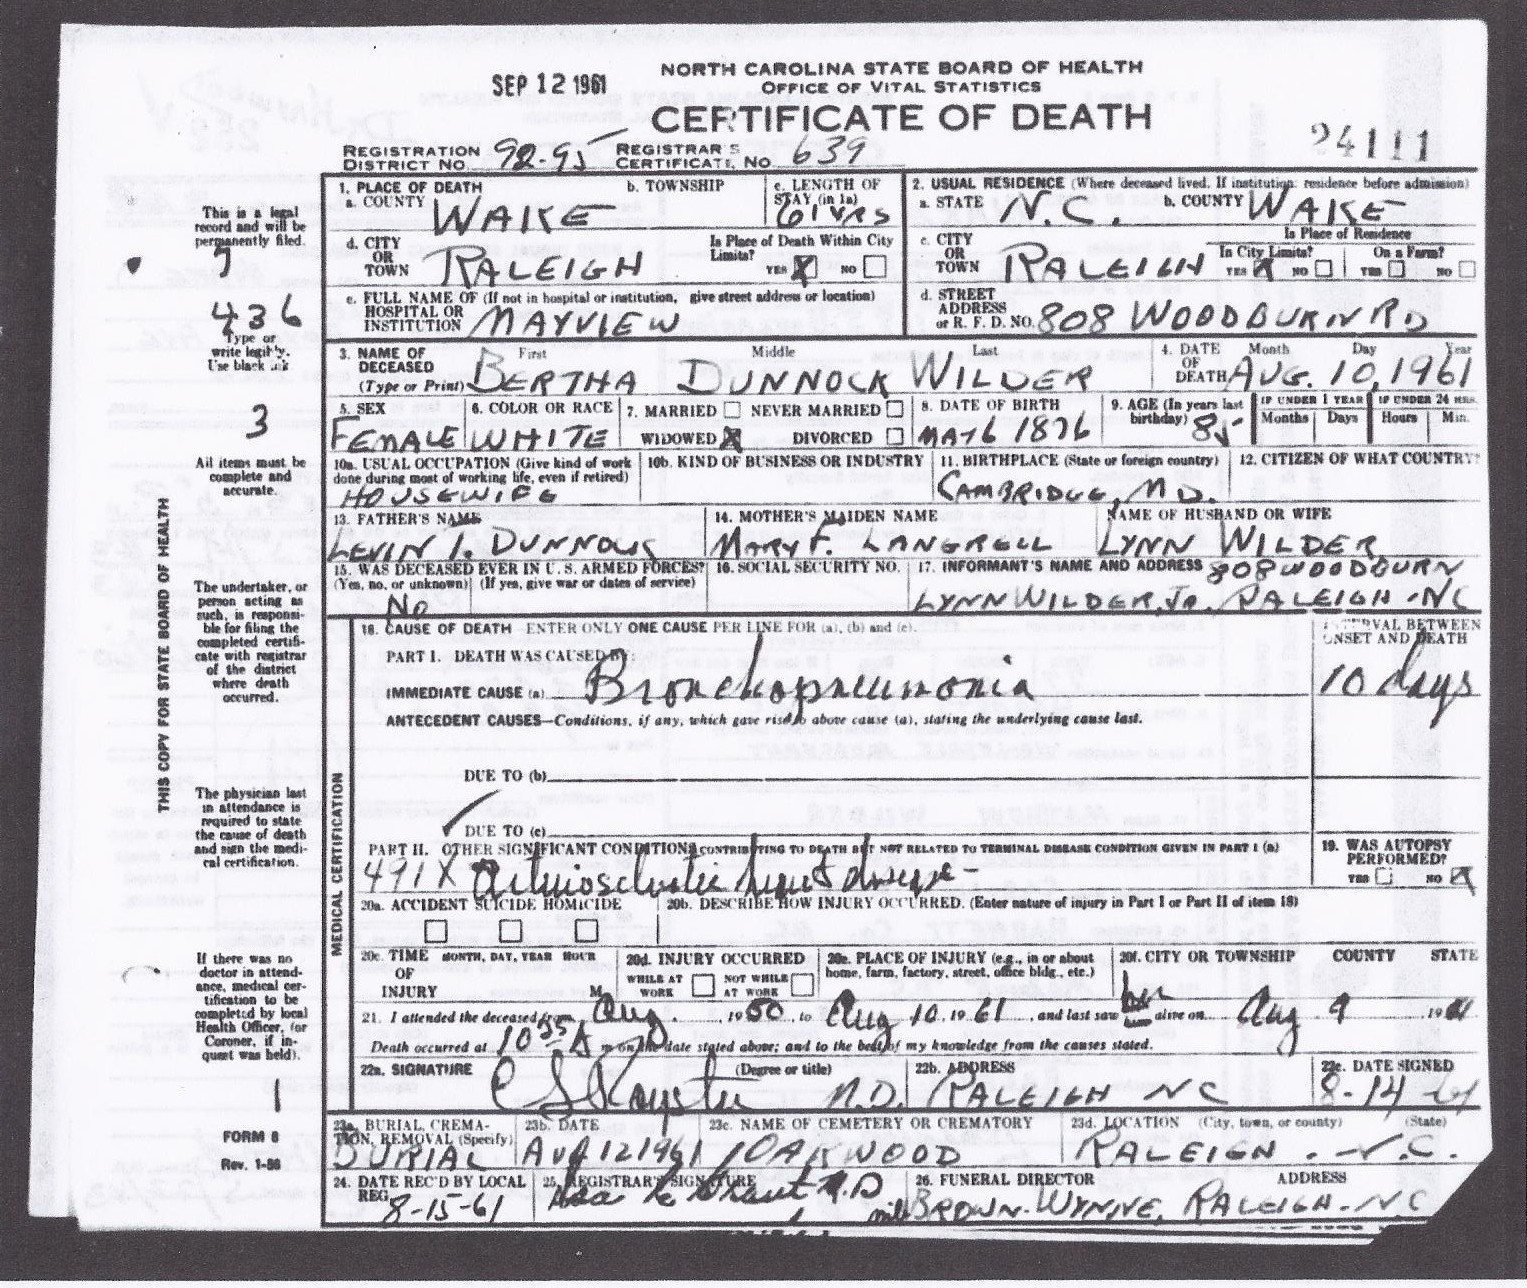 Bertha d wilder 1876 1961 find a grave memorial copy of north carolina death certificate for bertha dunnock wilder wife of lynn s wilder sr bertha was born march 6 1876 in maryland and died august aiddatafo Gallery